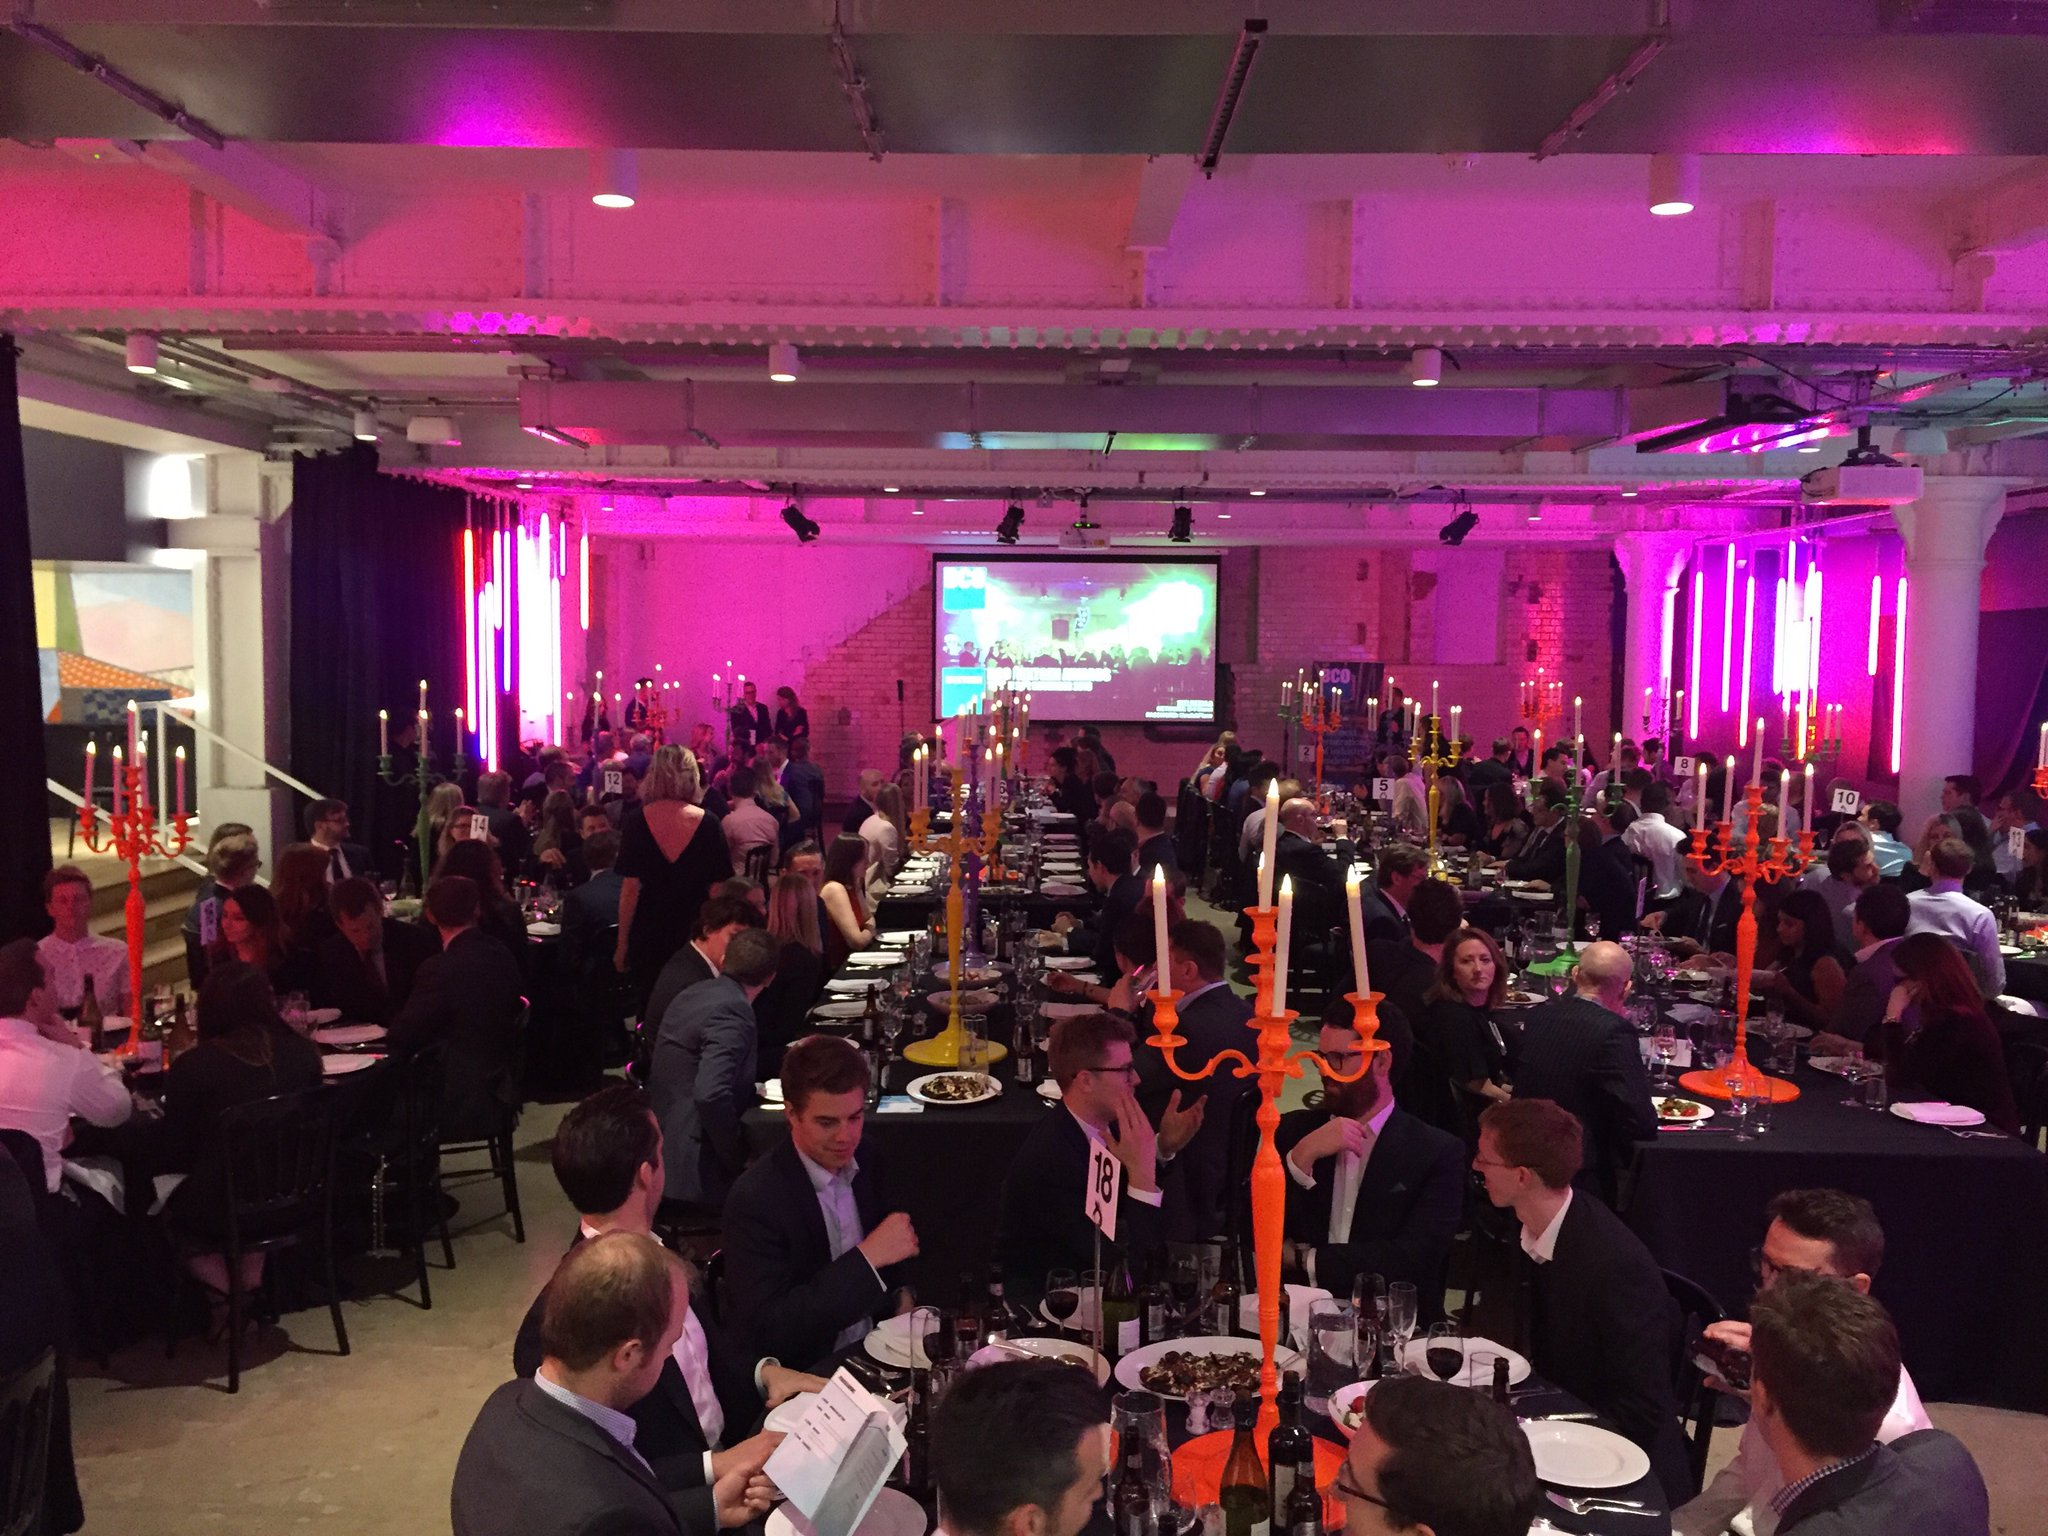 """Tonight @UandIplc is """"home to the next generation of property leaders"""" - M Weiner #BCONextGenAwards https://t.co/pe2IRydhbe"""